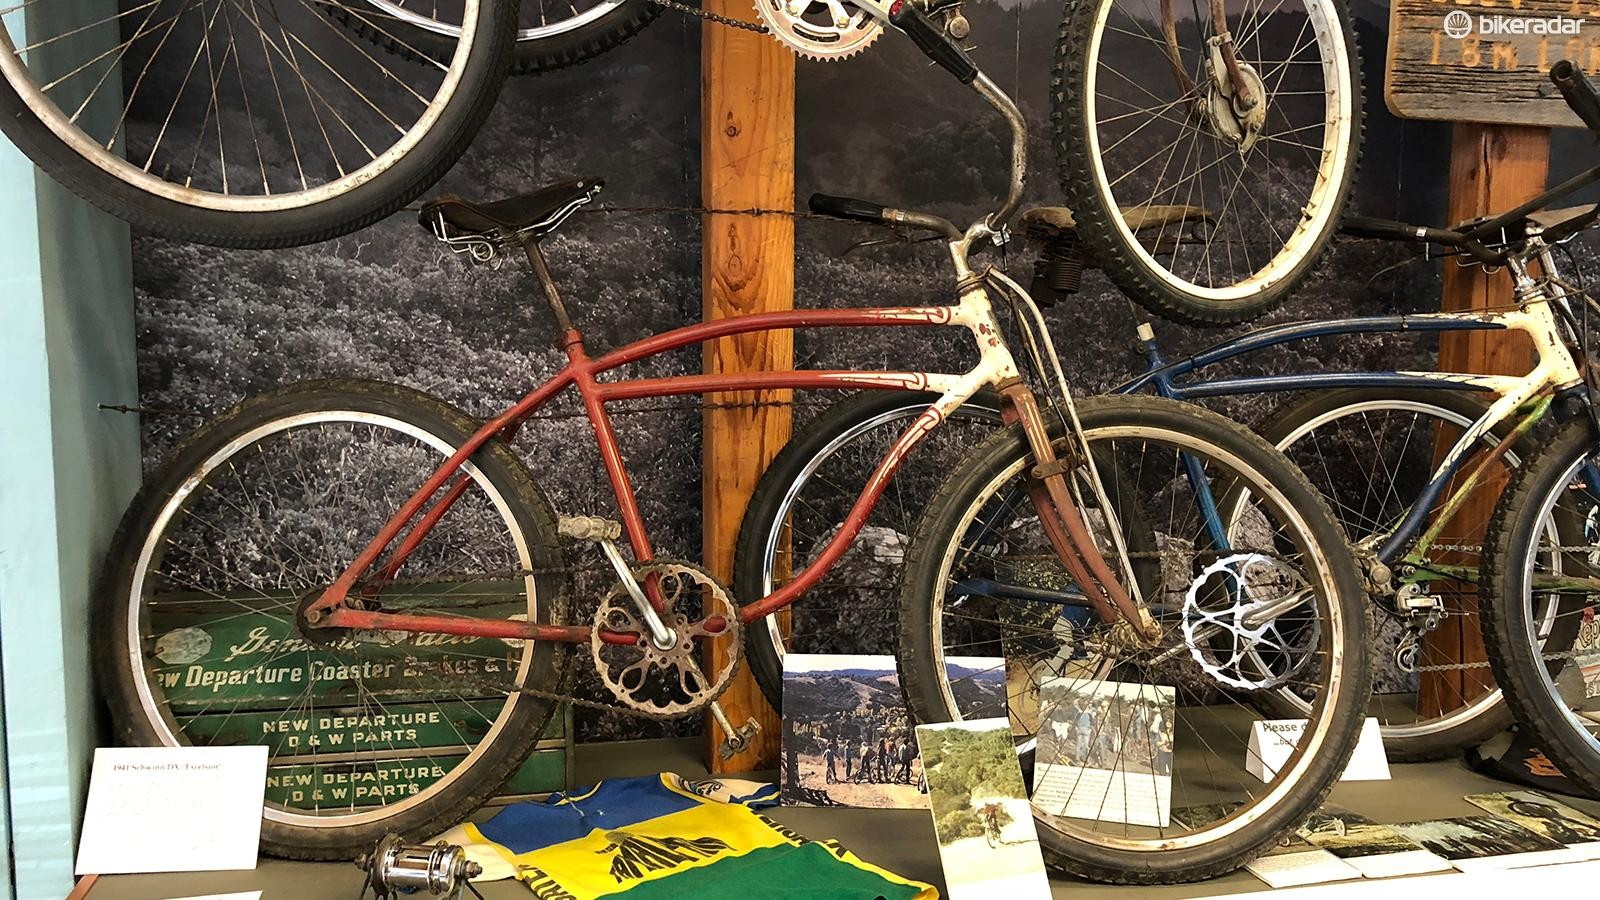 This 1941 Schwinn DX Excelsior was rescued by Otis Guy from a junkyard in 1974 and was one of the many 'clunkers' used in 1970s